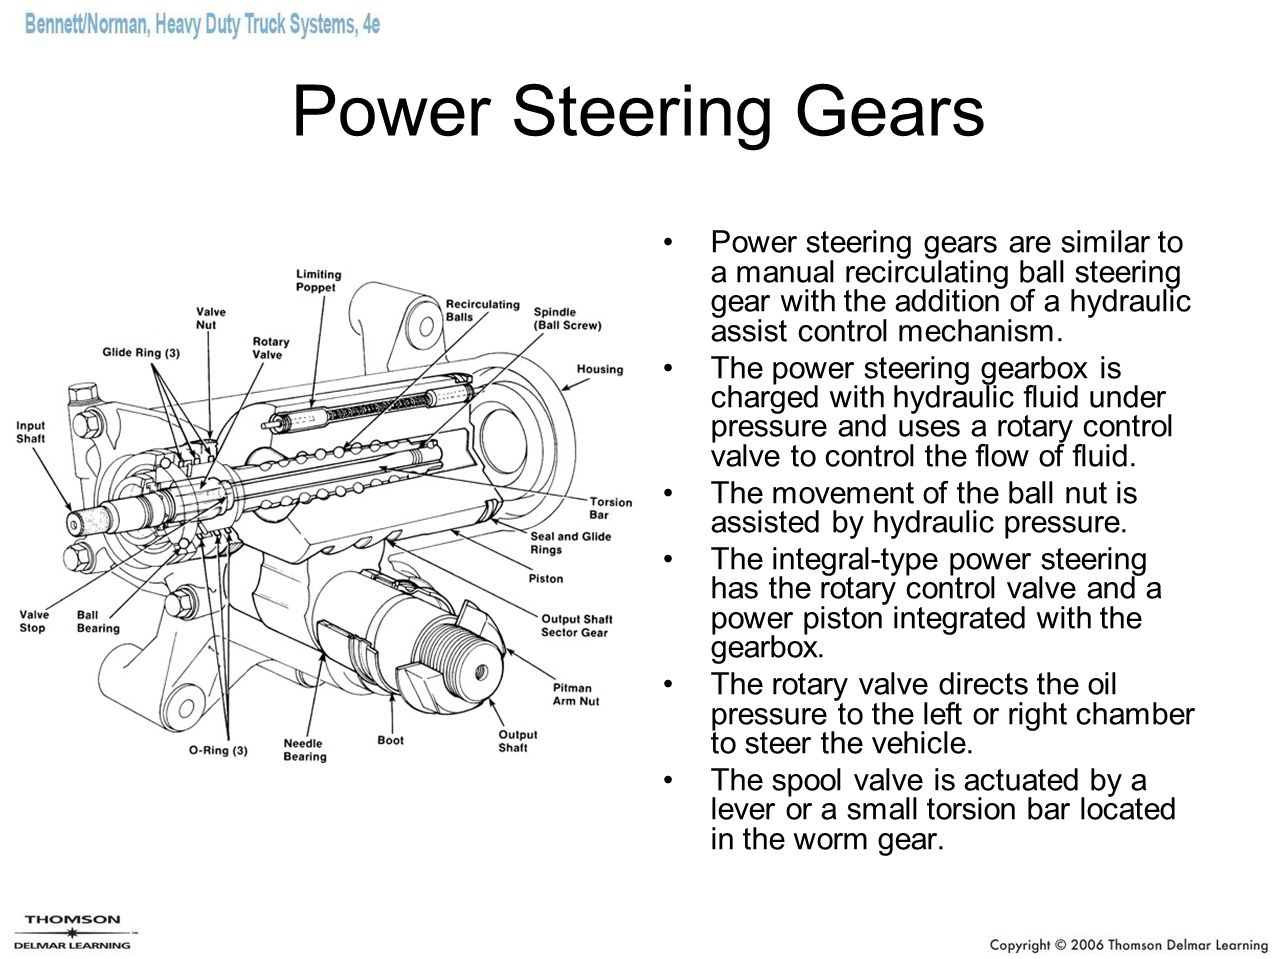 Power Steering Gears